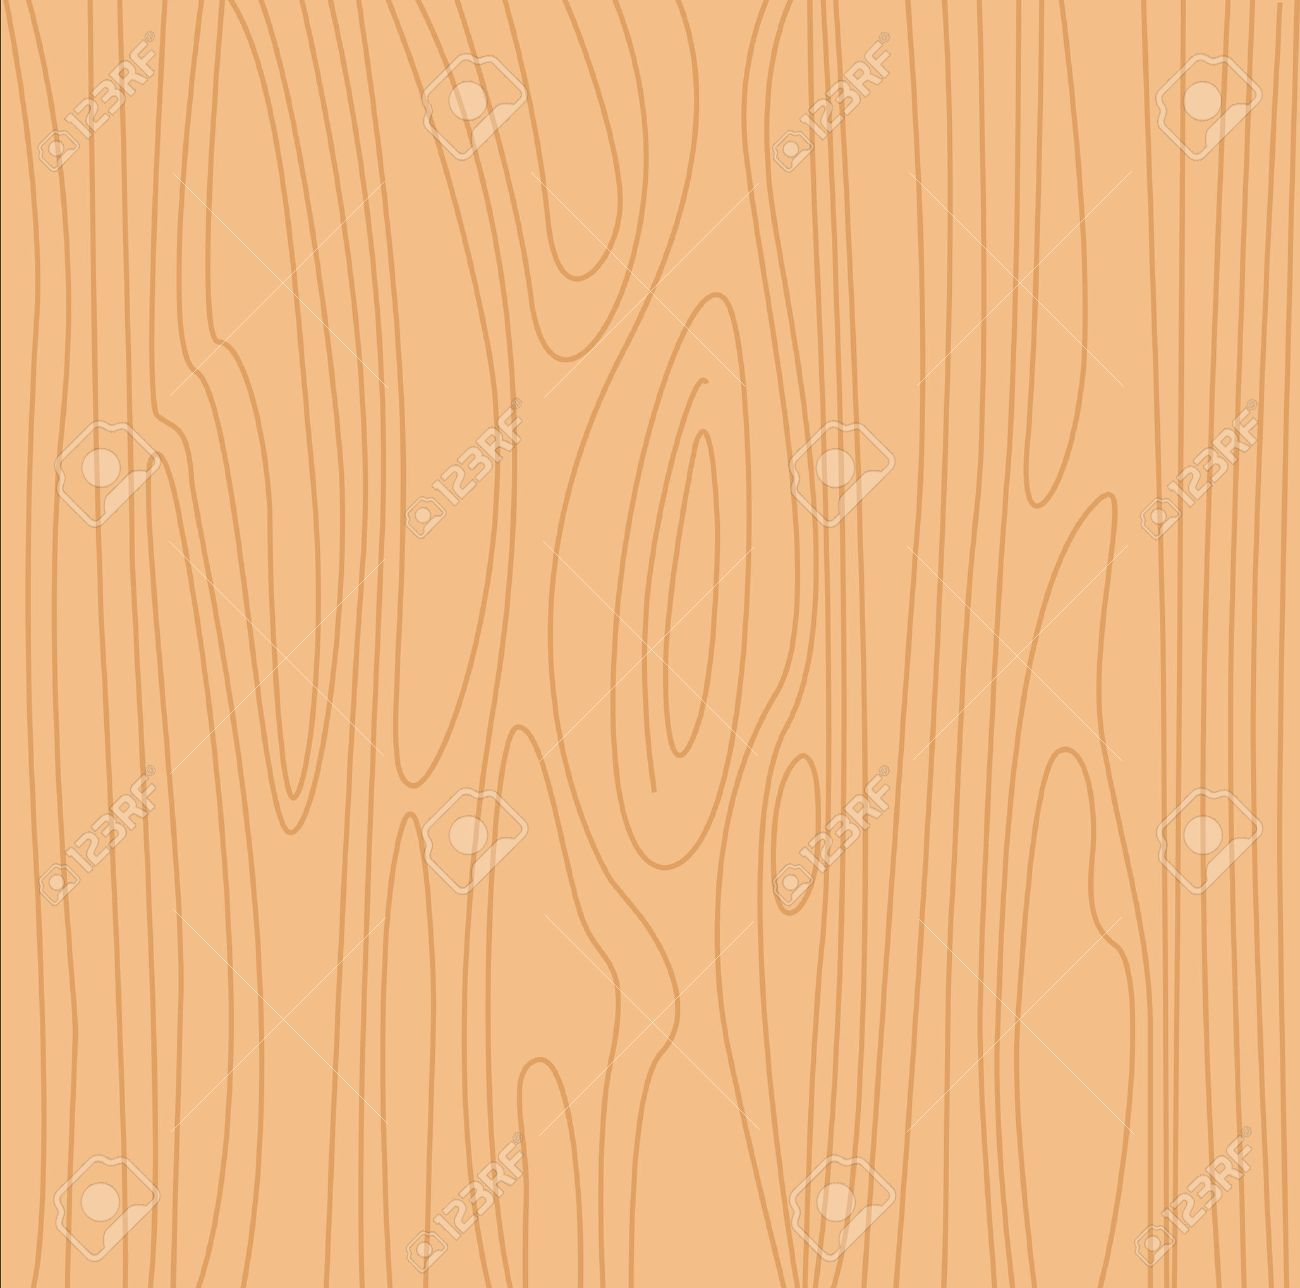 Natural Beige Wood Background. Pine Wood Texture. Royalty Free ...